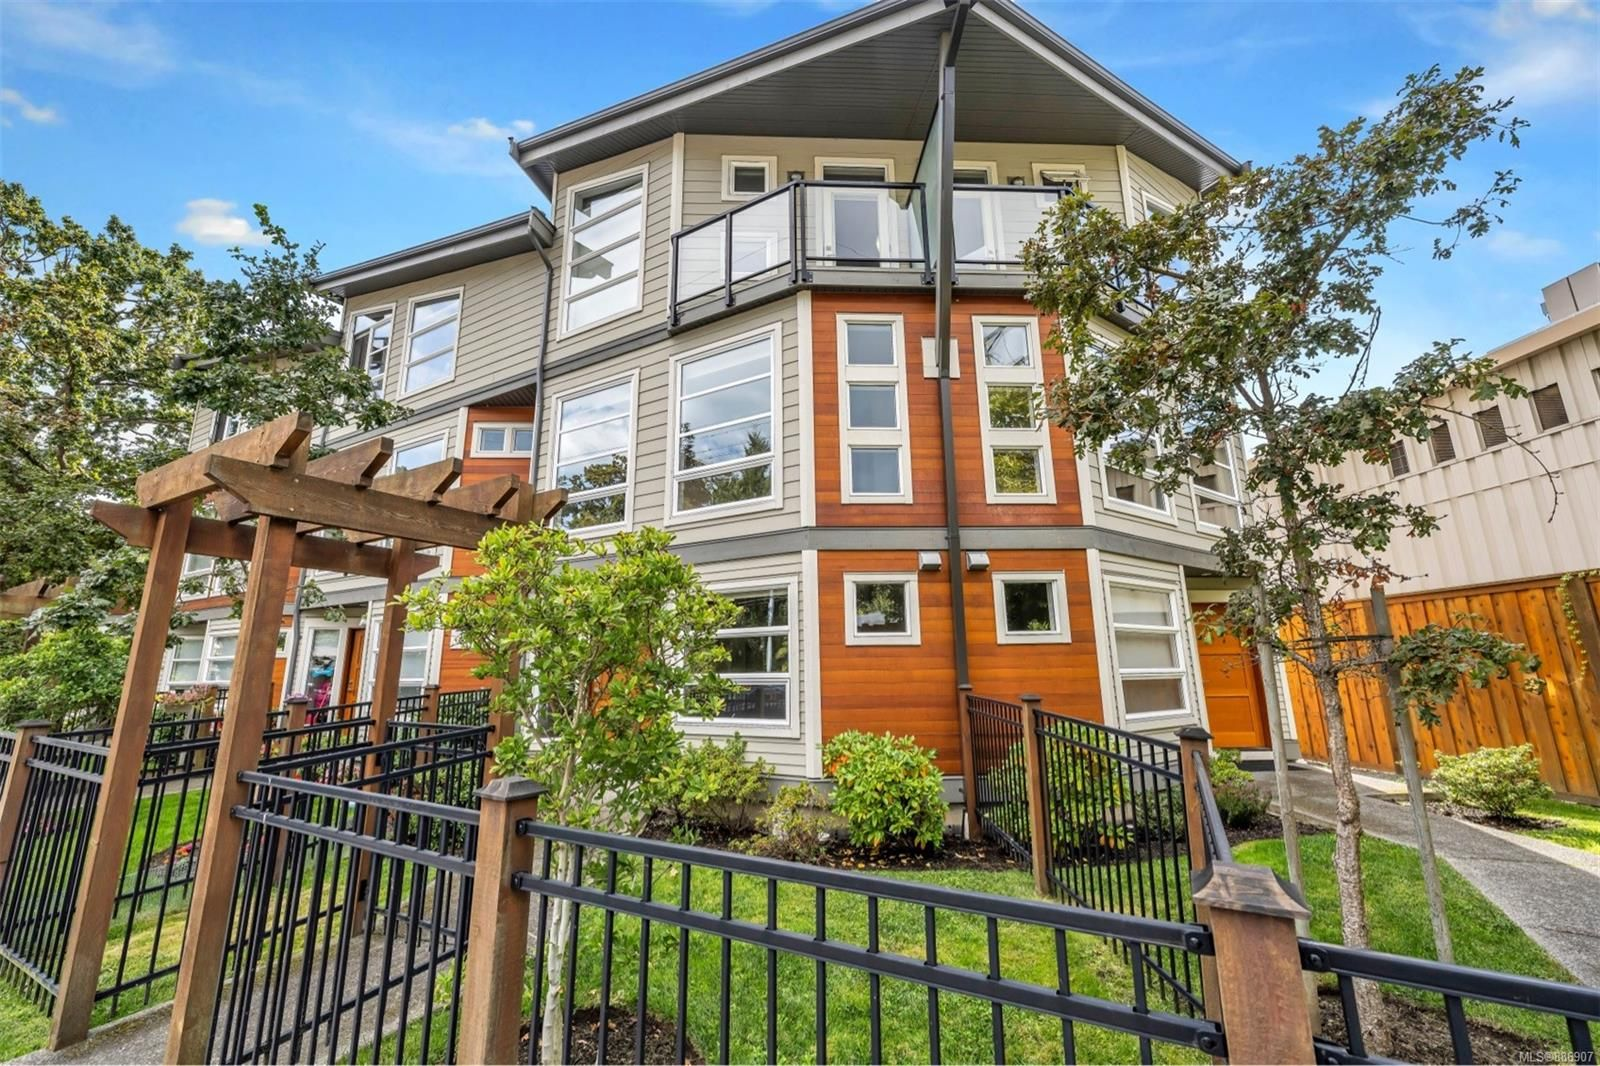 Main Photo: 2 3440 Linwood Ave in Saanich: SE Maplewood Row/Townhouse for sale (Saanich East)  : MLS®# 886907